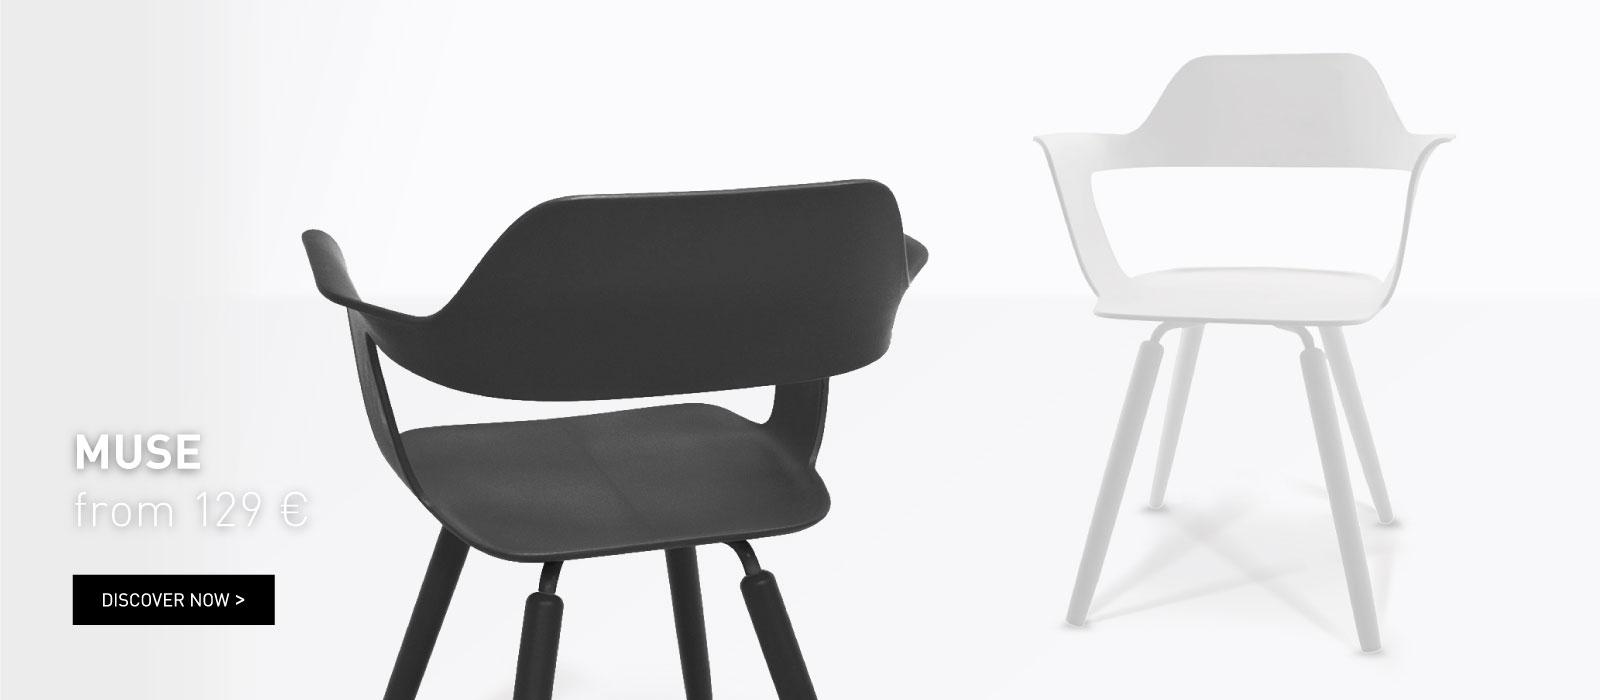 MUSE chair | from 129 €